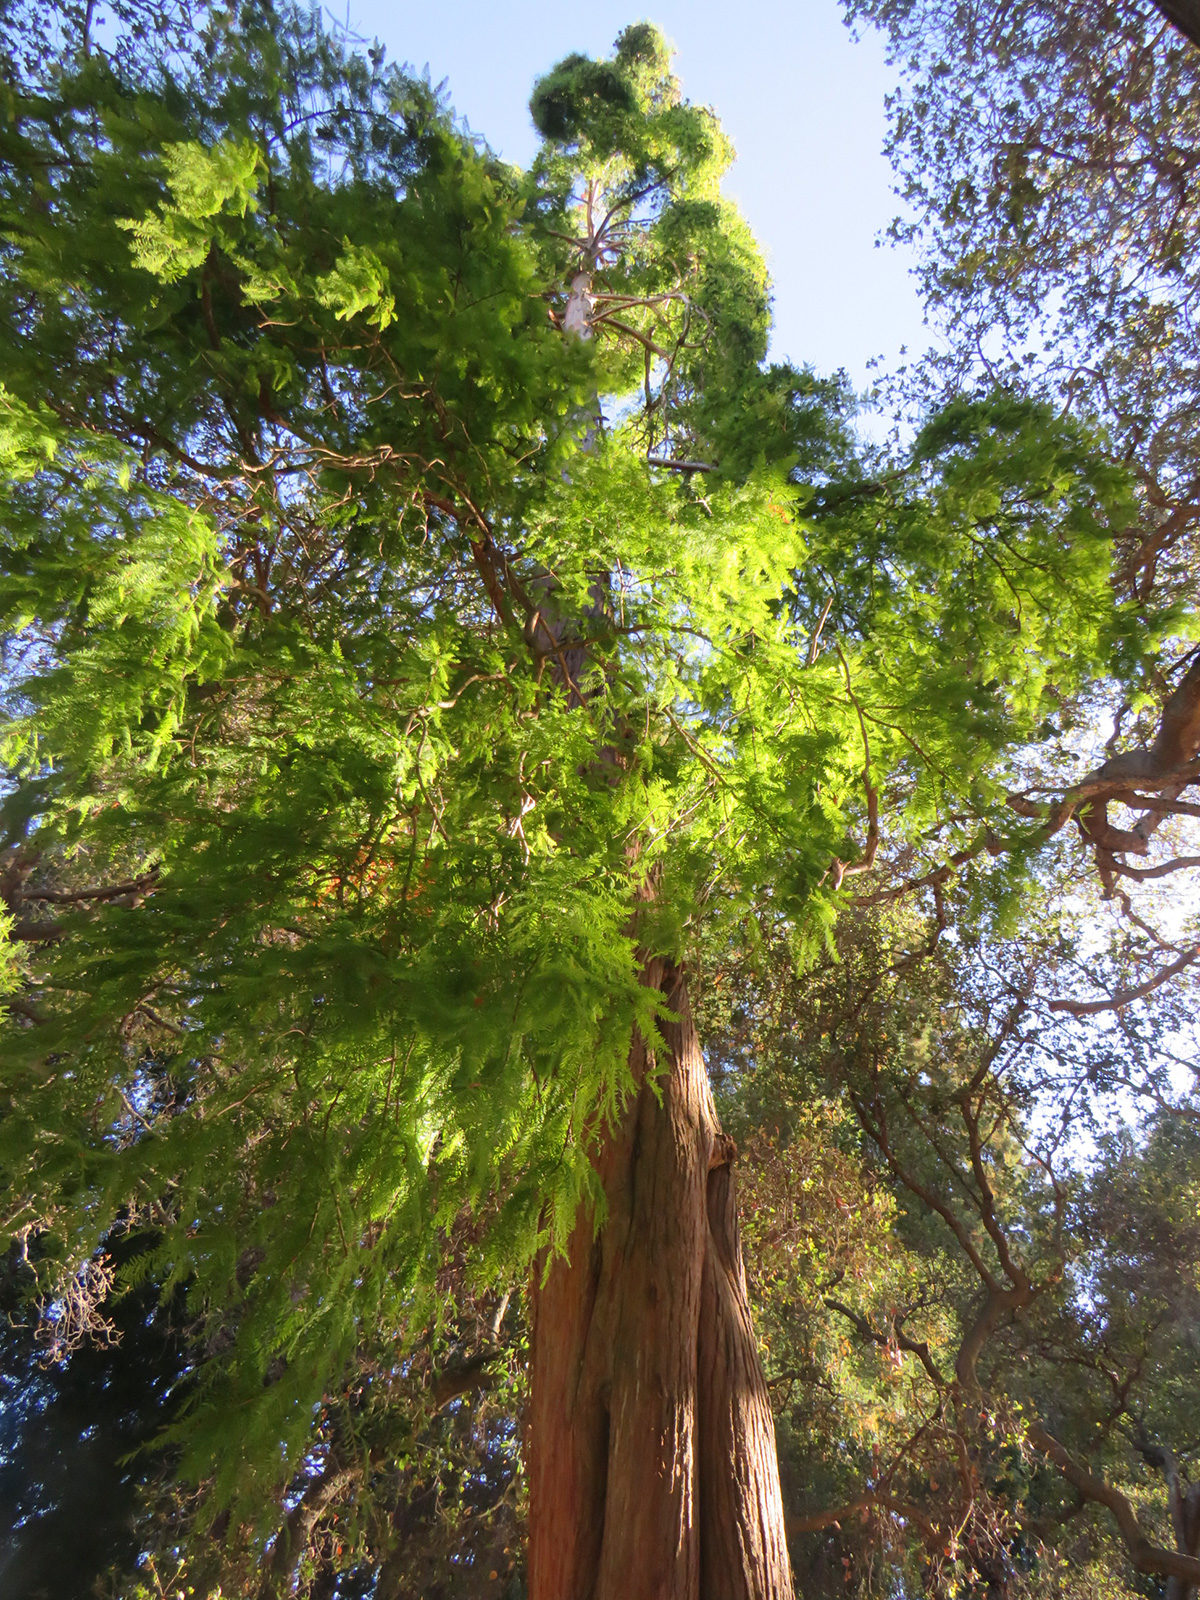 dawn redwood at UC Berkeley